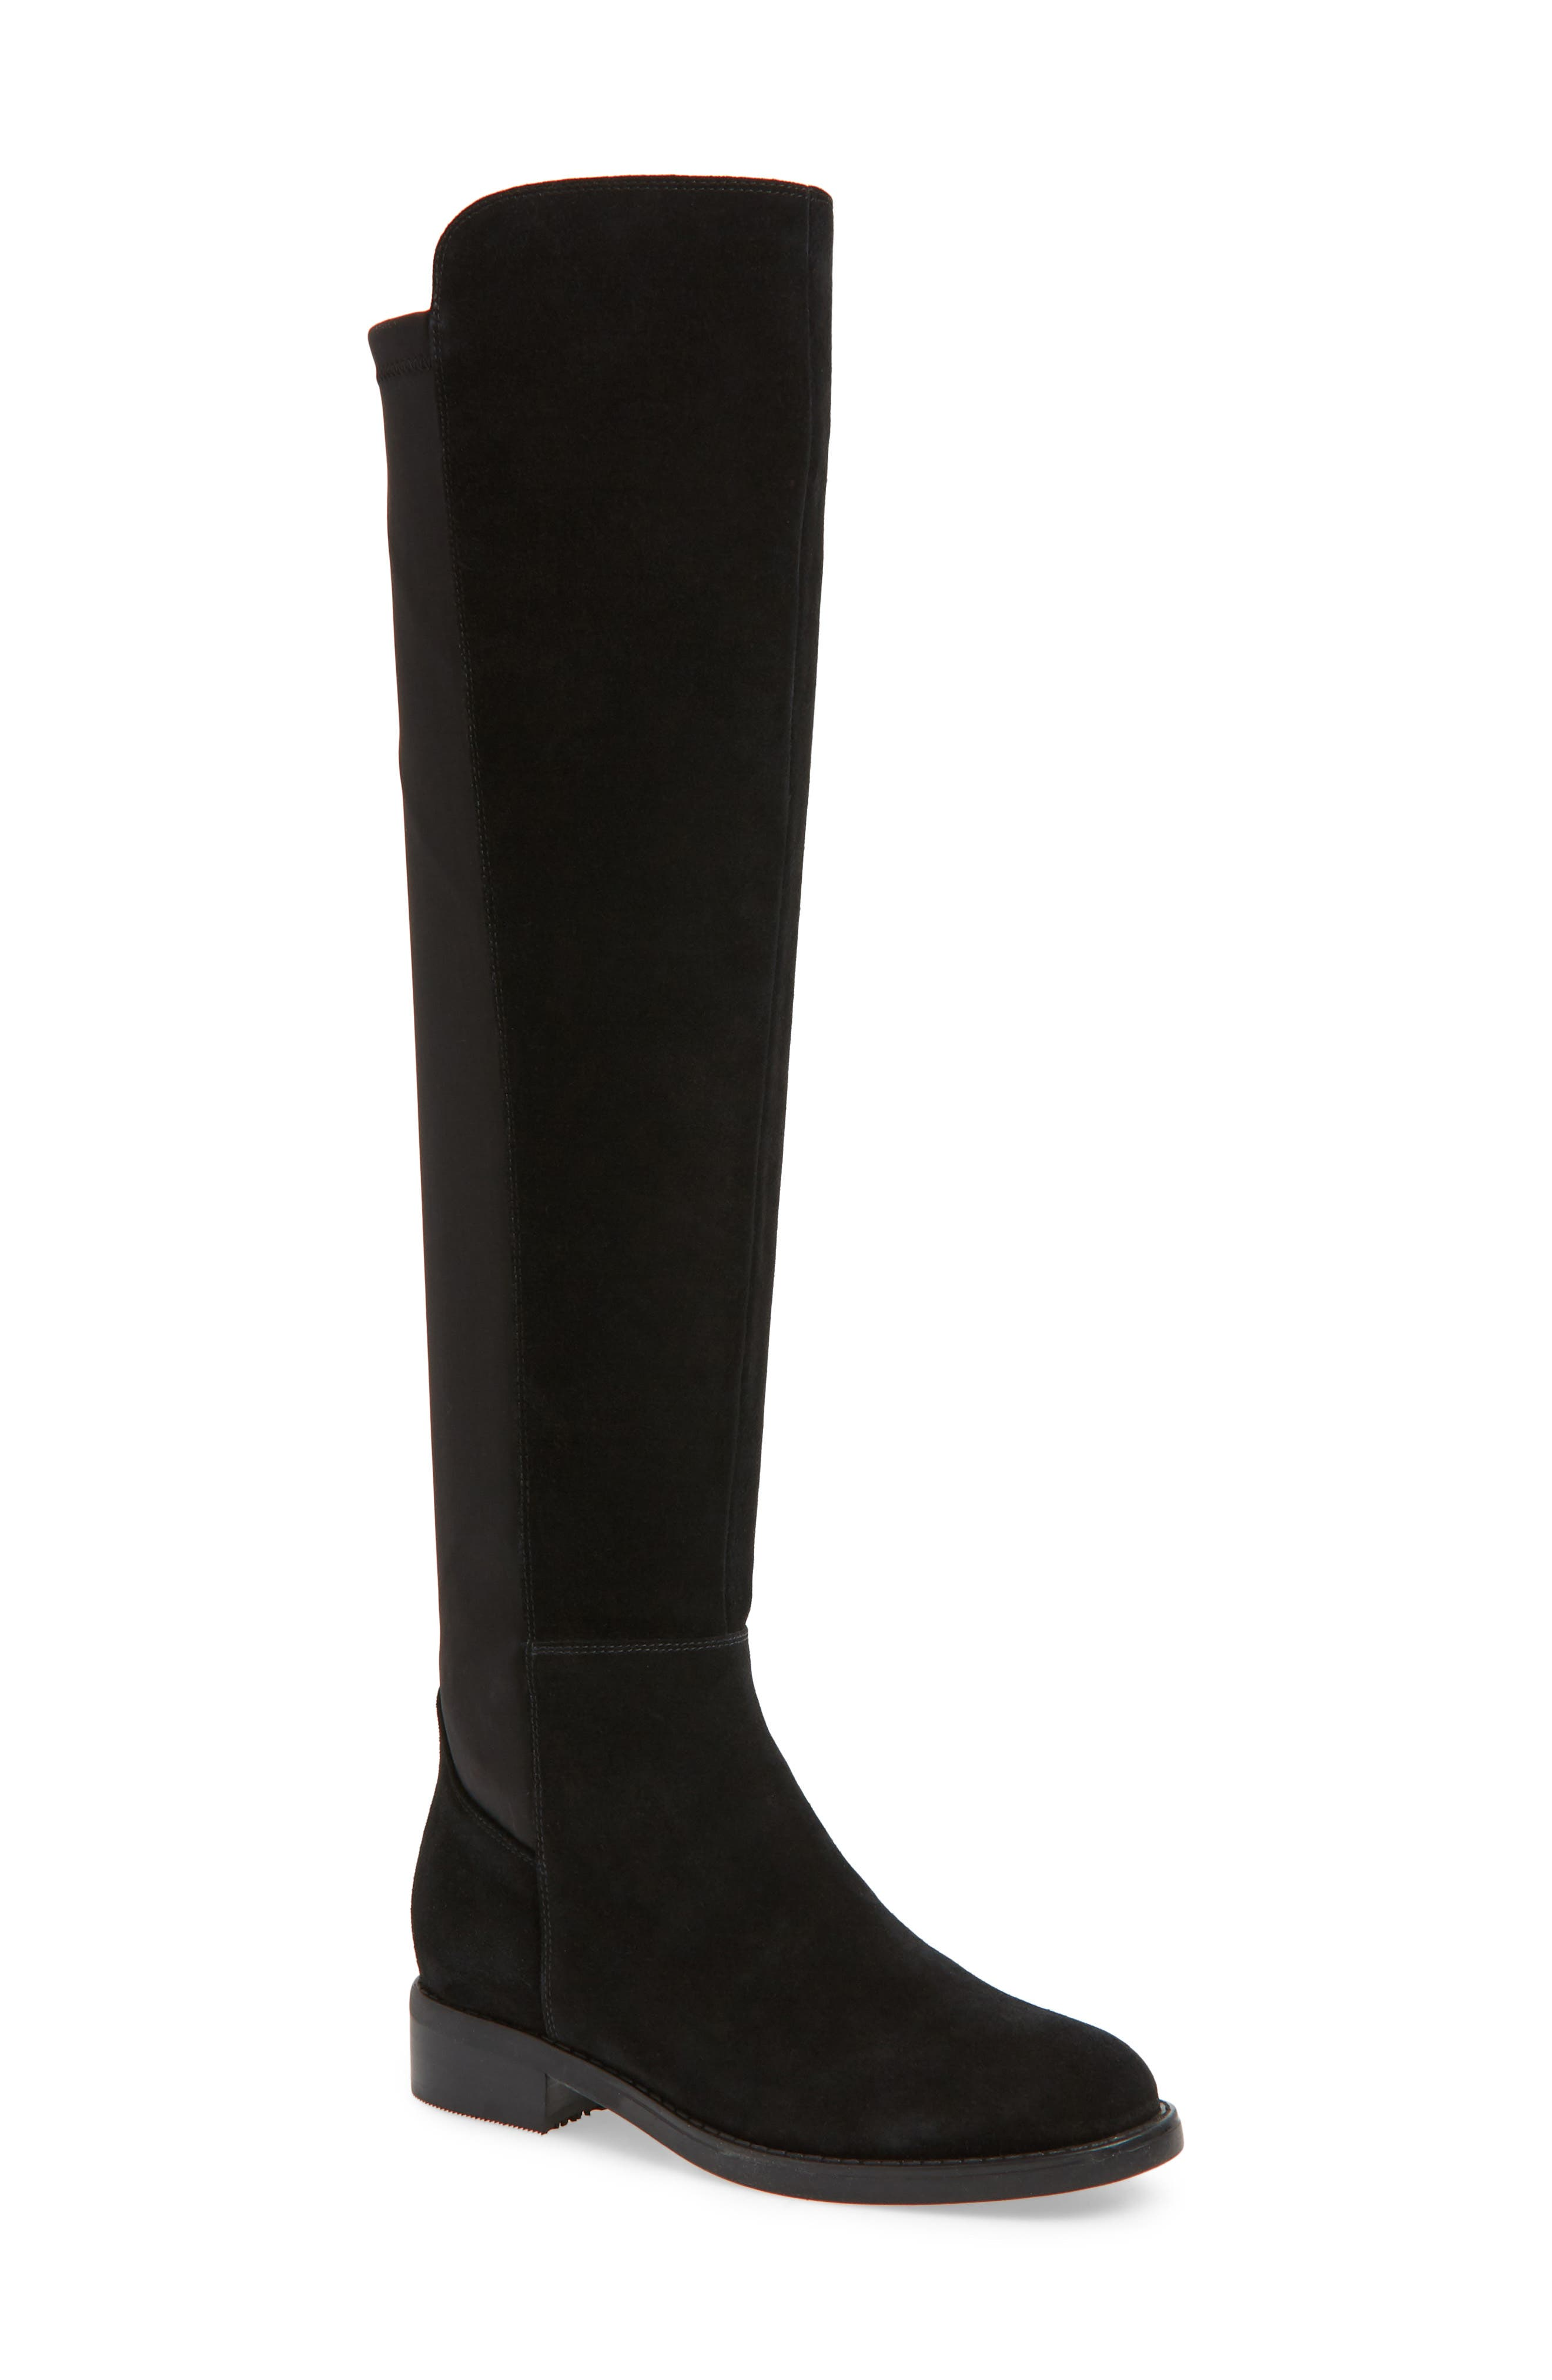 BLONDO Danny Over the Knee Waterproof Boot, Main, color, 001